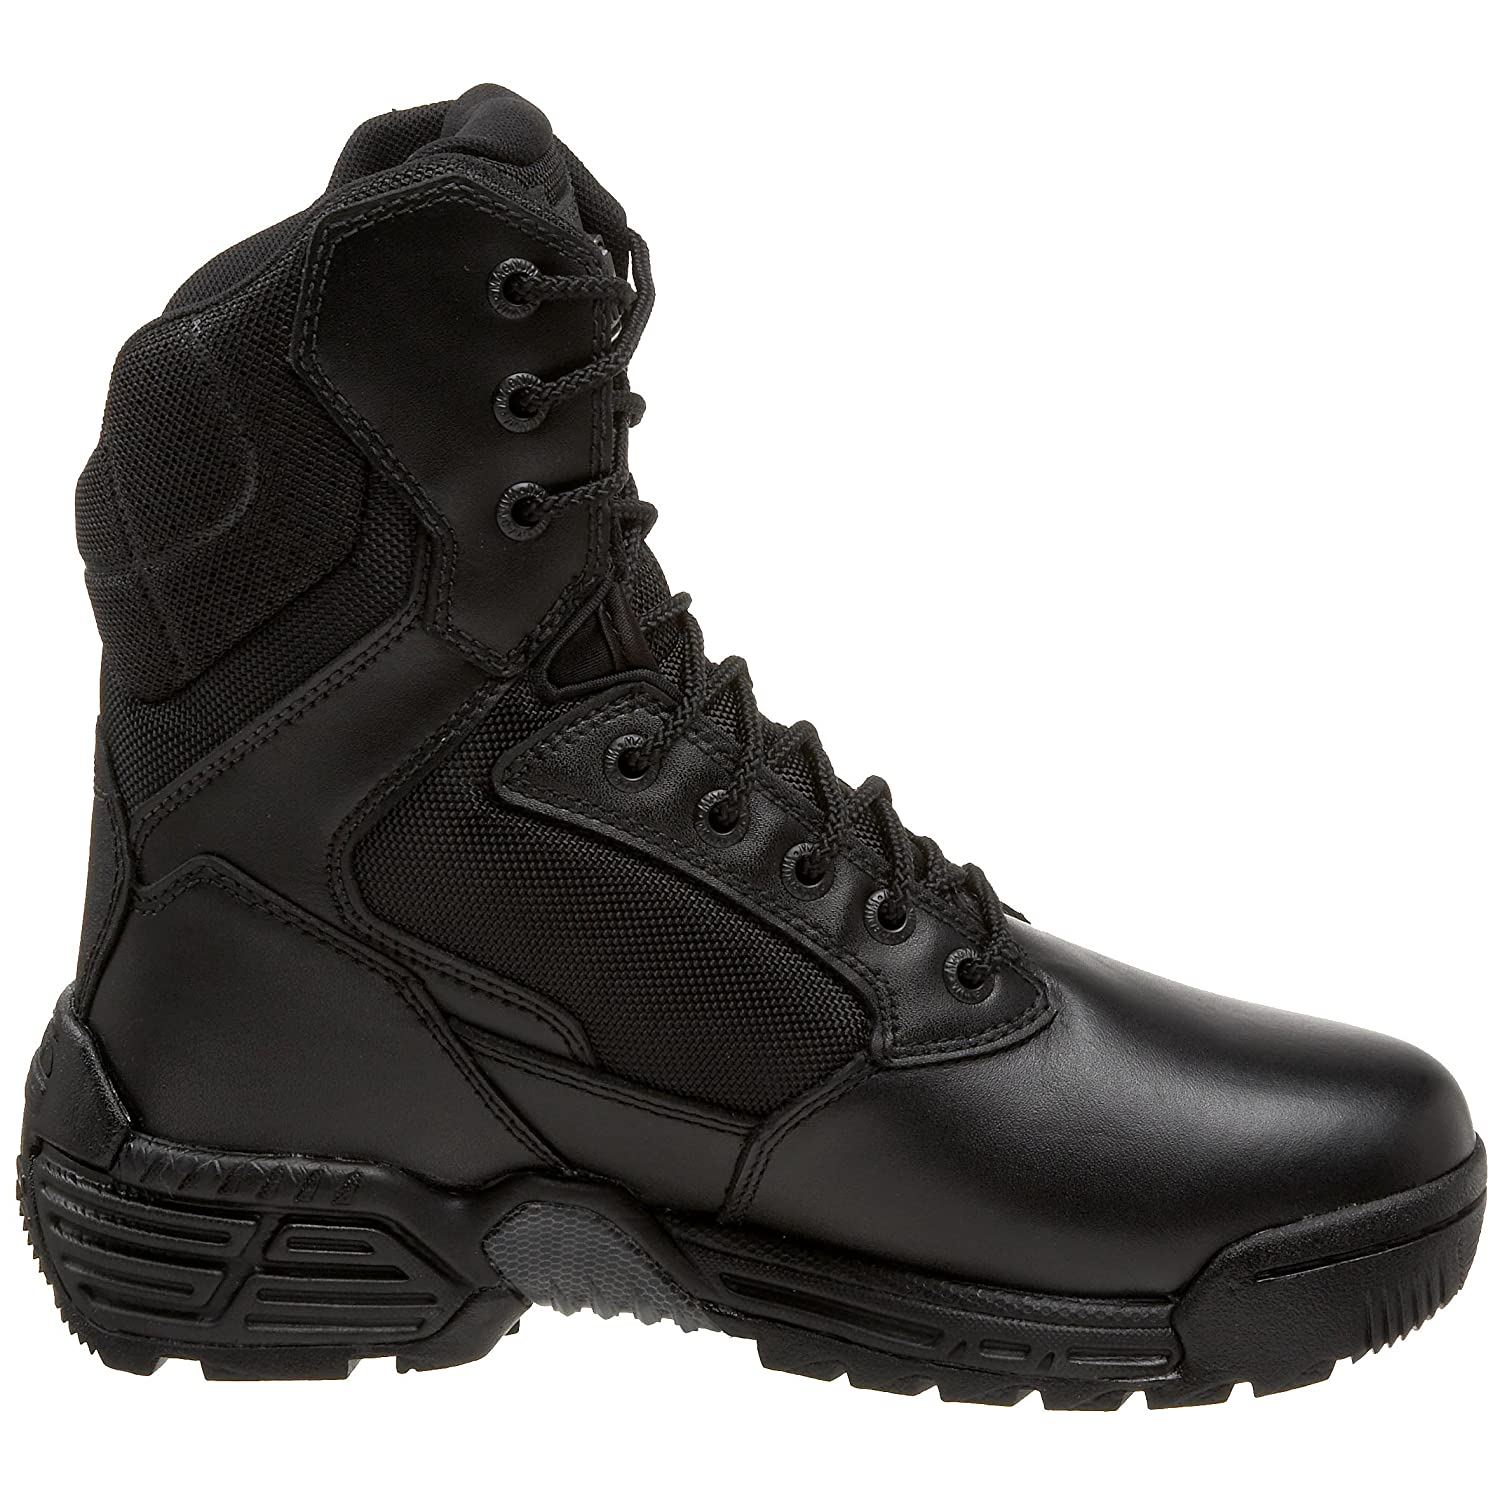 Magnum Women's Stealth Force 8.0 Boot B001D9P692 6 B(M) US|Black